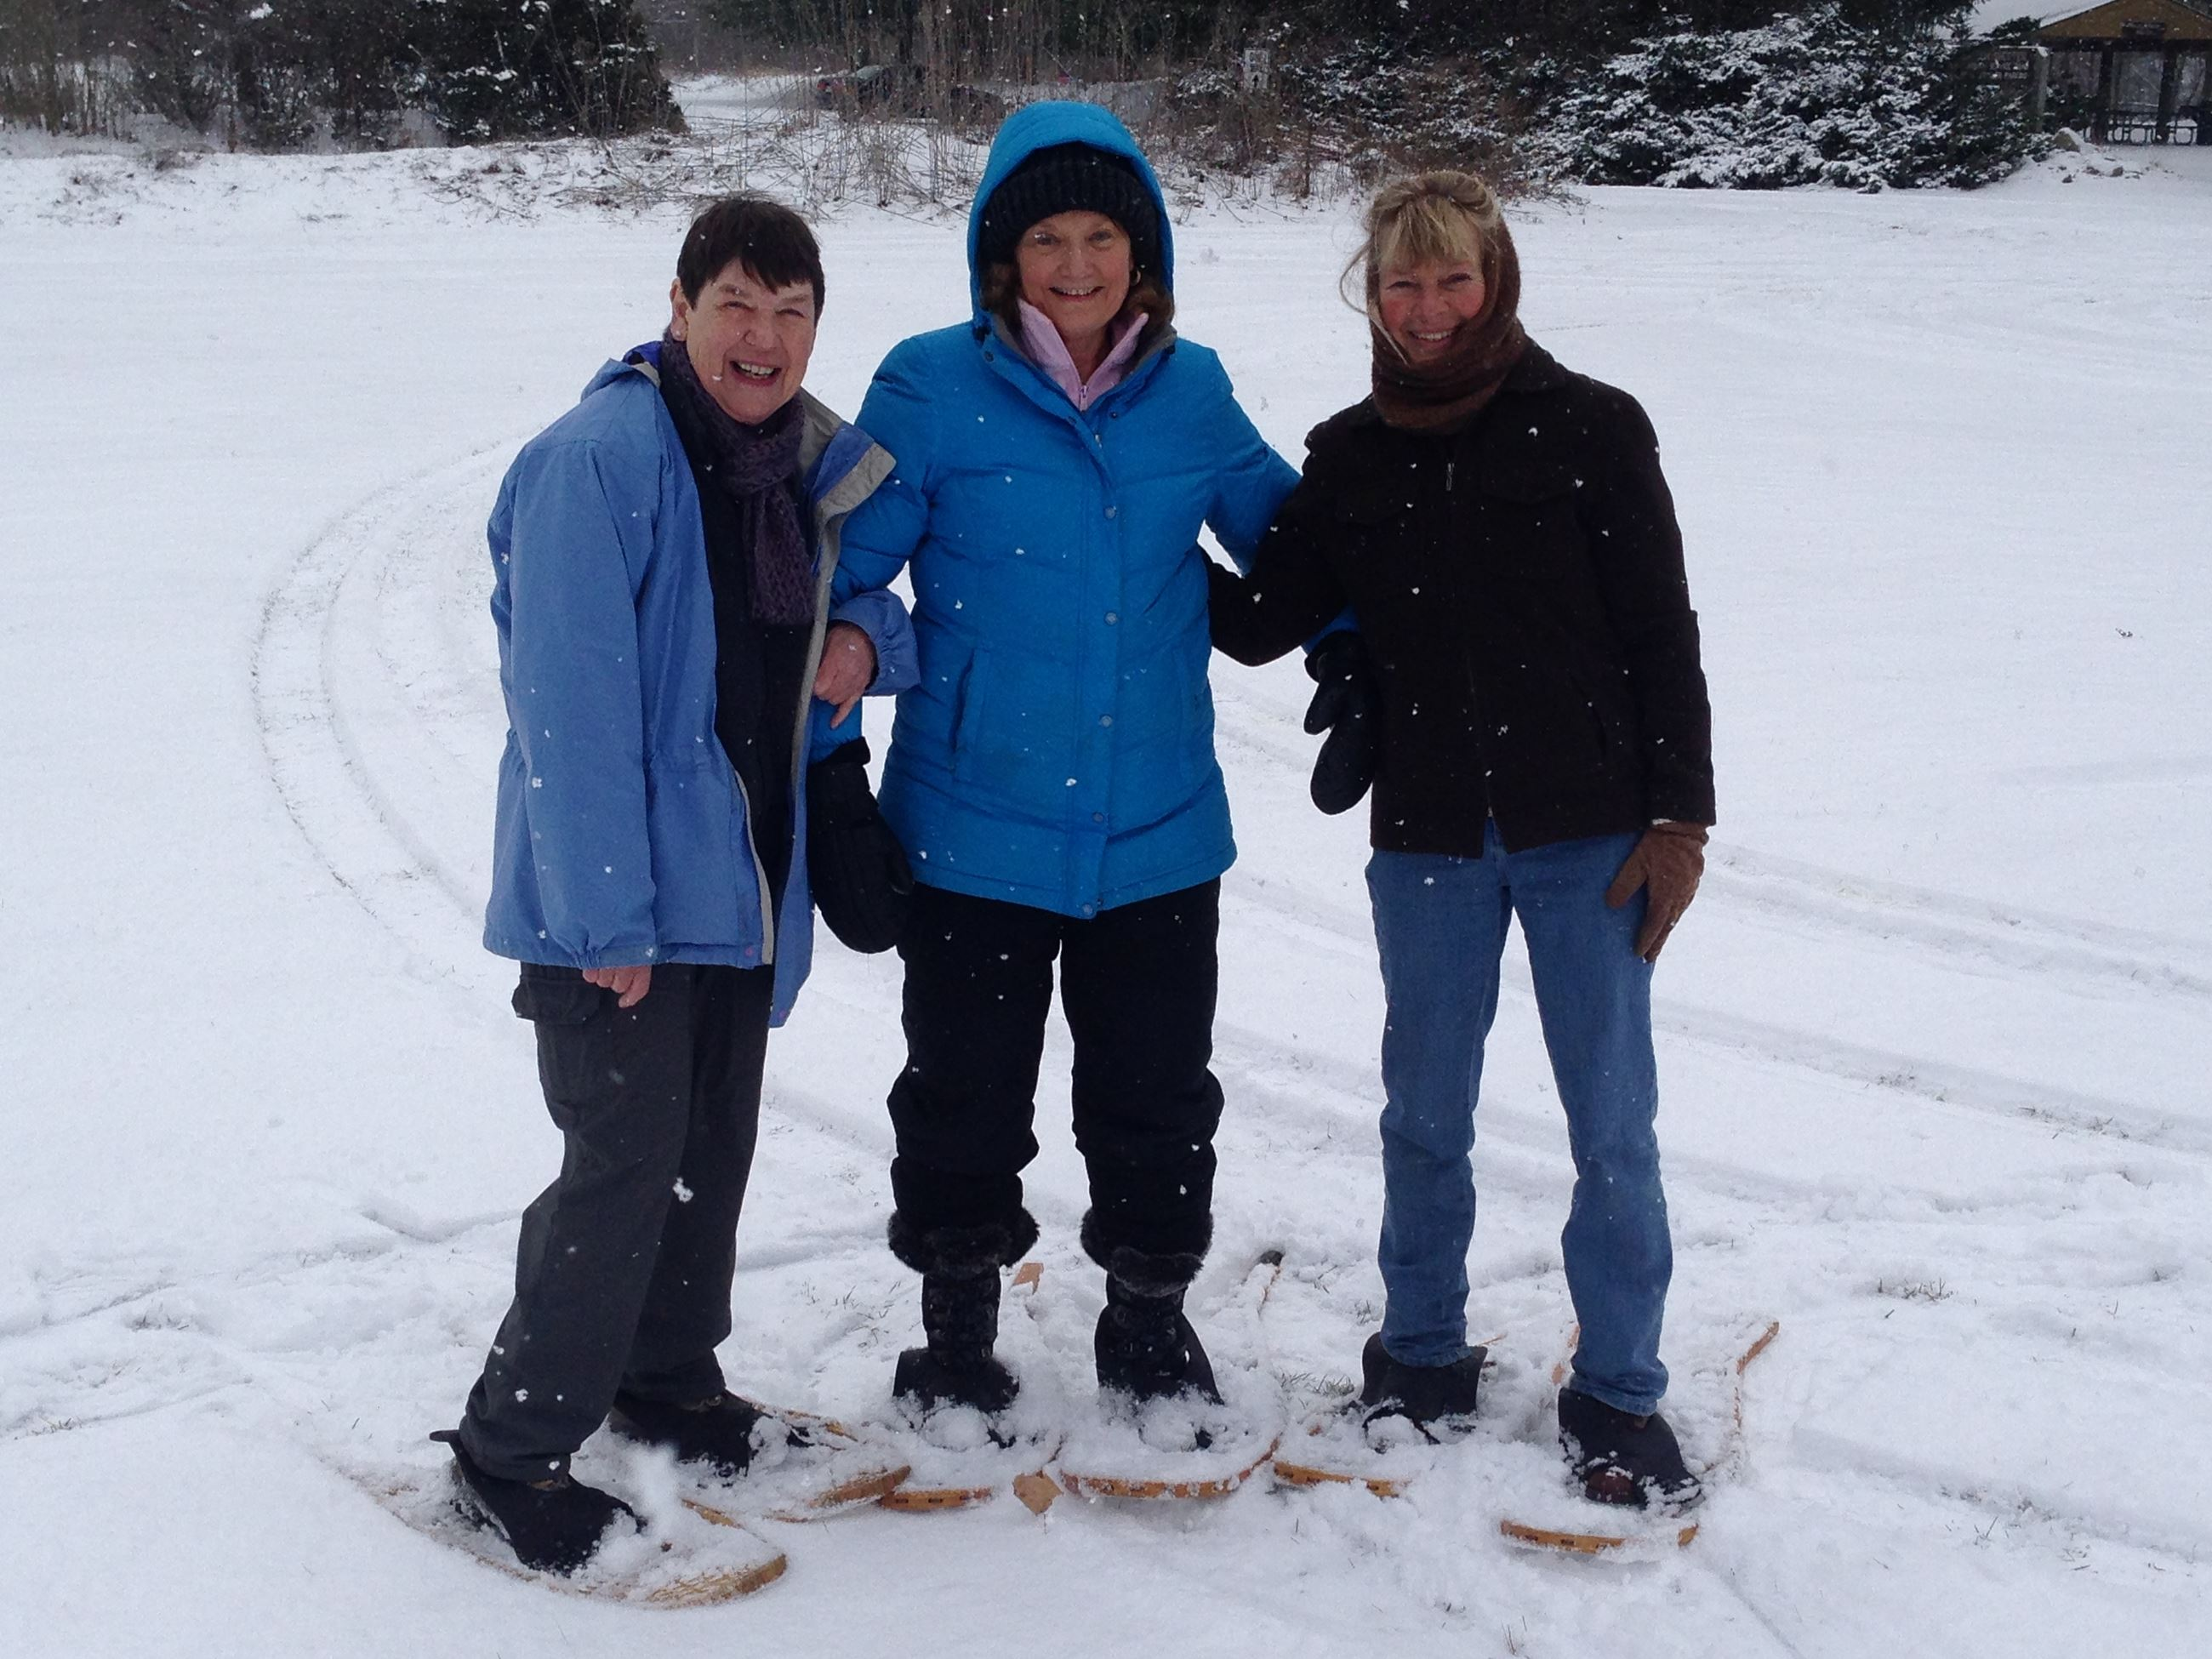 snowshoers at the park